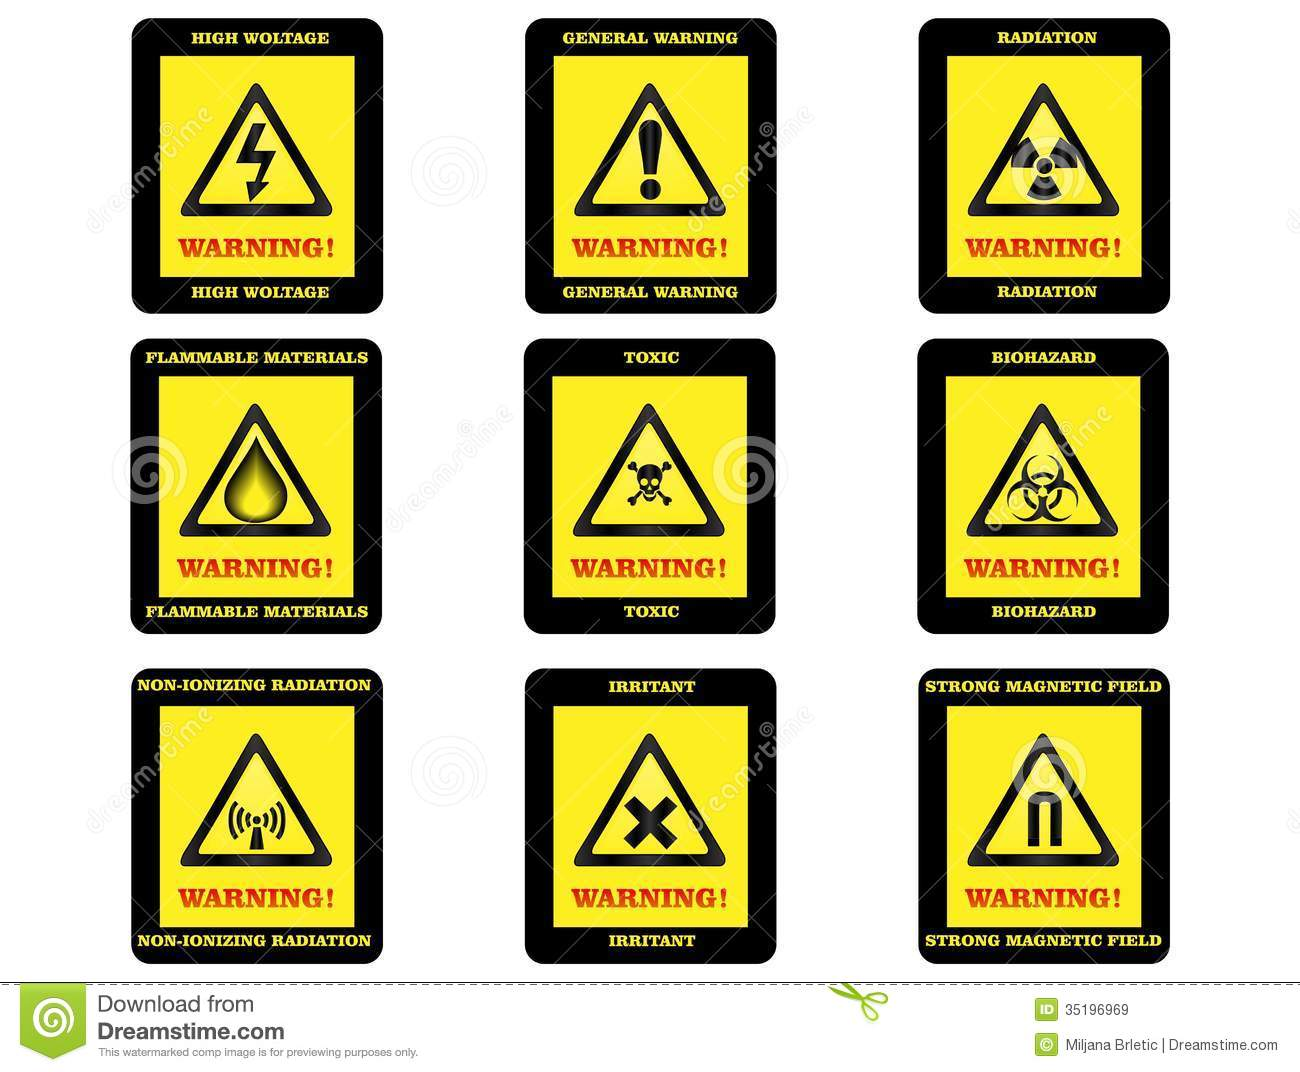 Warning Hazard Signs Royalty Free Stock Images  Image: 35196969